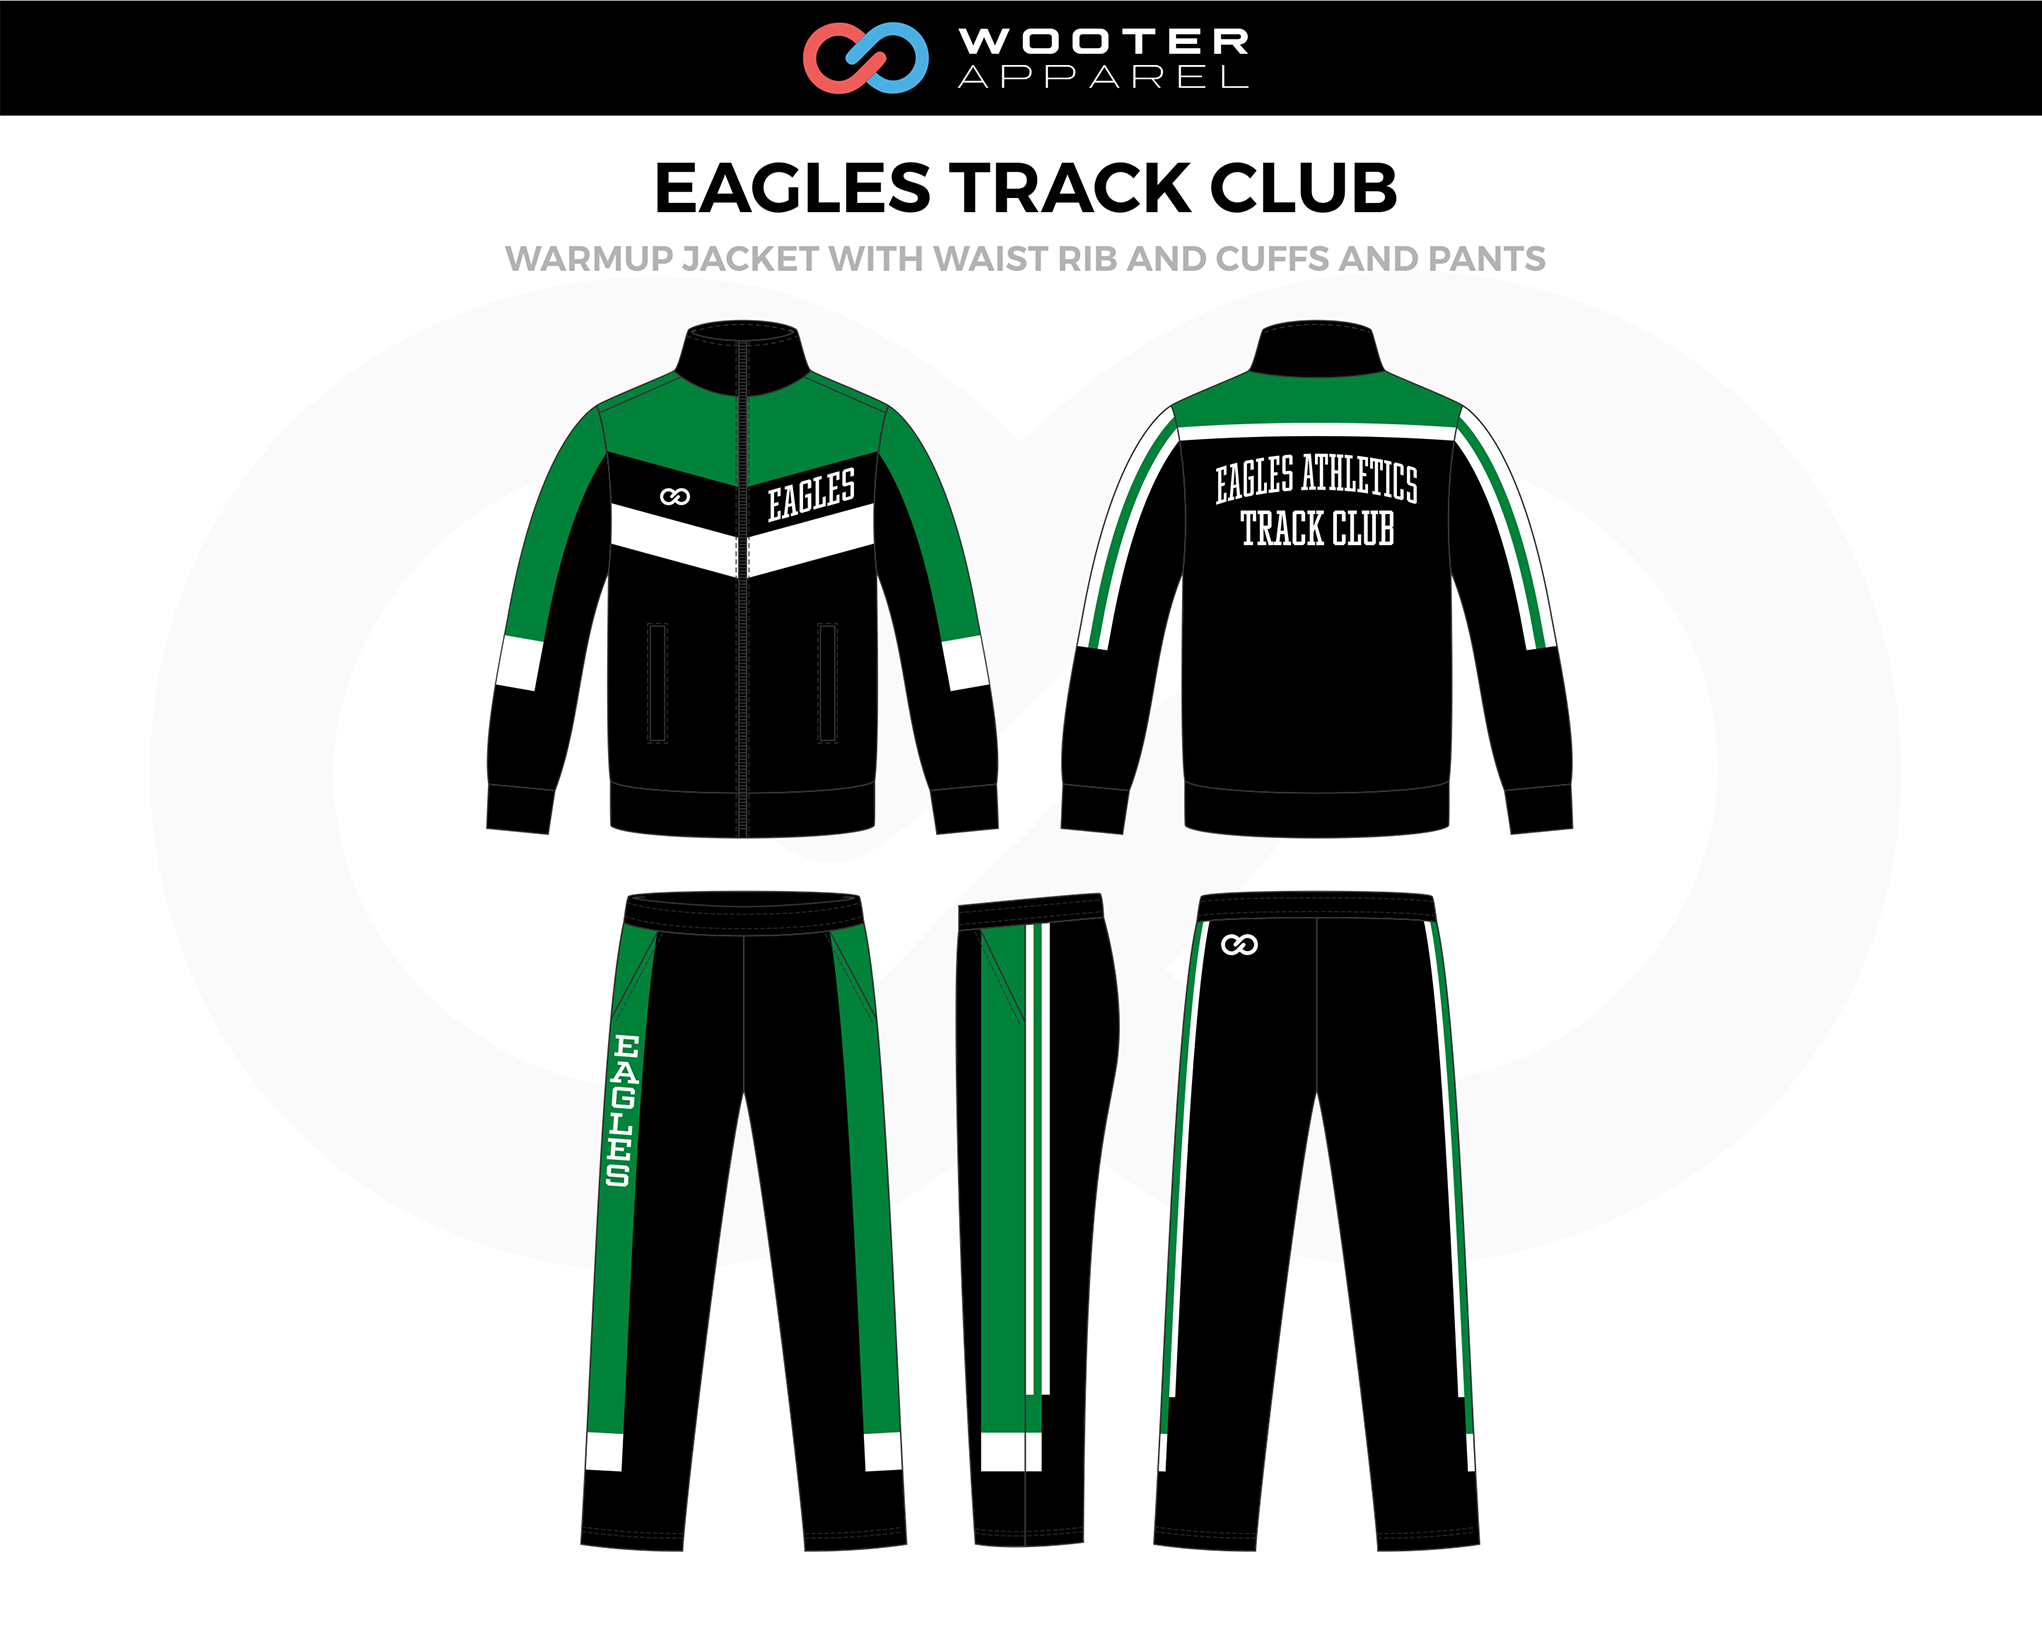 EAGLES TRACK CLUB Black Green White Track Warm Up Jacket with Waist Rib and Cuffs, and Pants